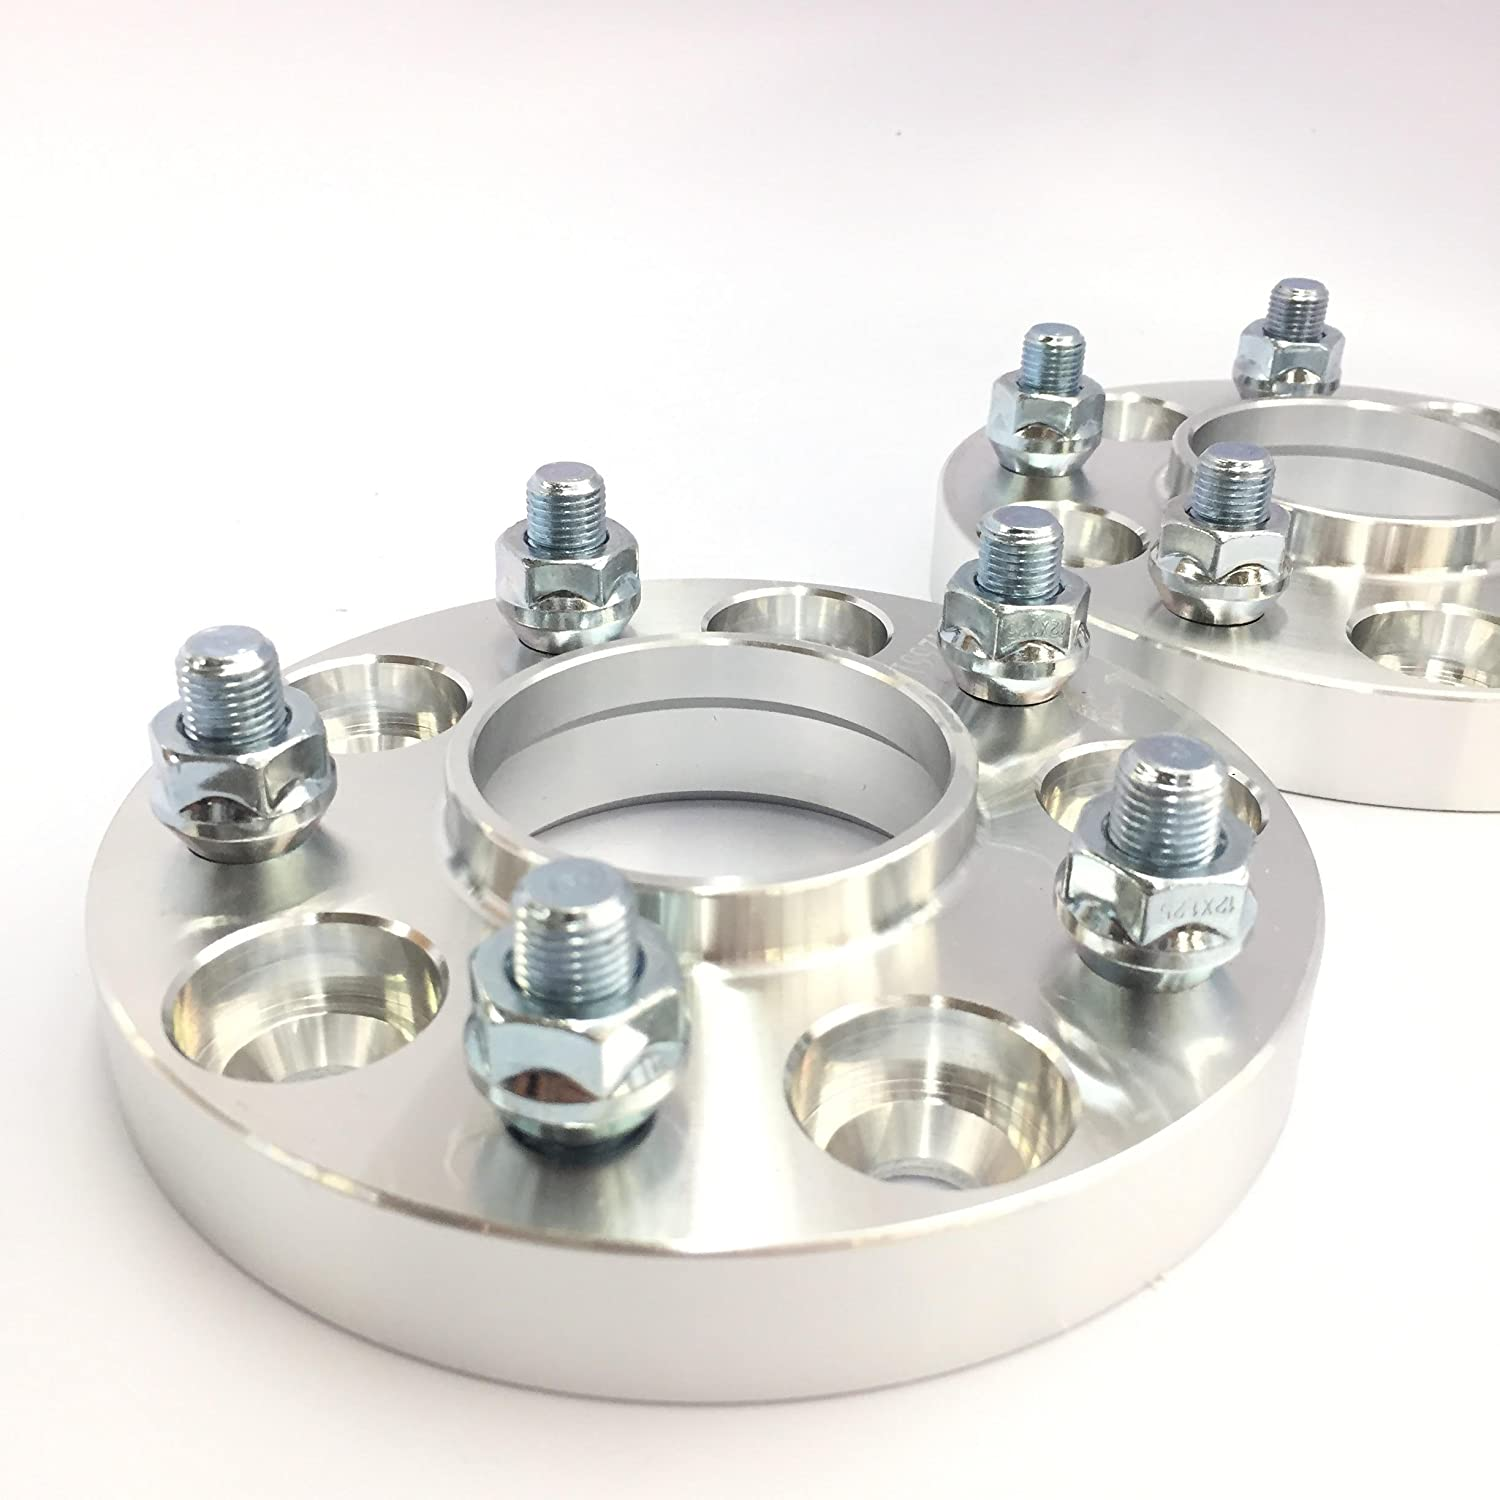 4 Pieces 1 25mm Hub Centric Wheel Spacers Adapters Bolt Pattern 5x108 Center Bore 63.4mm Fits Jaguar Ford